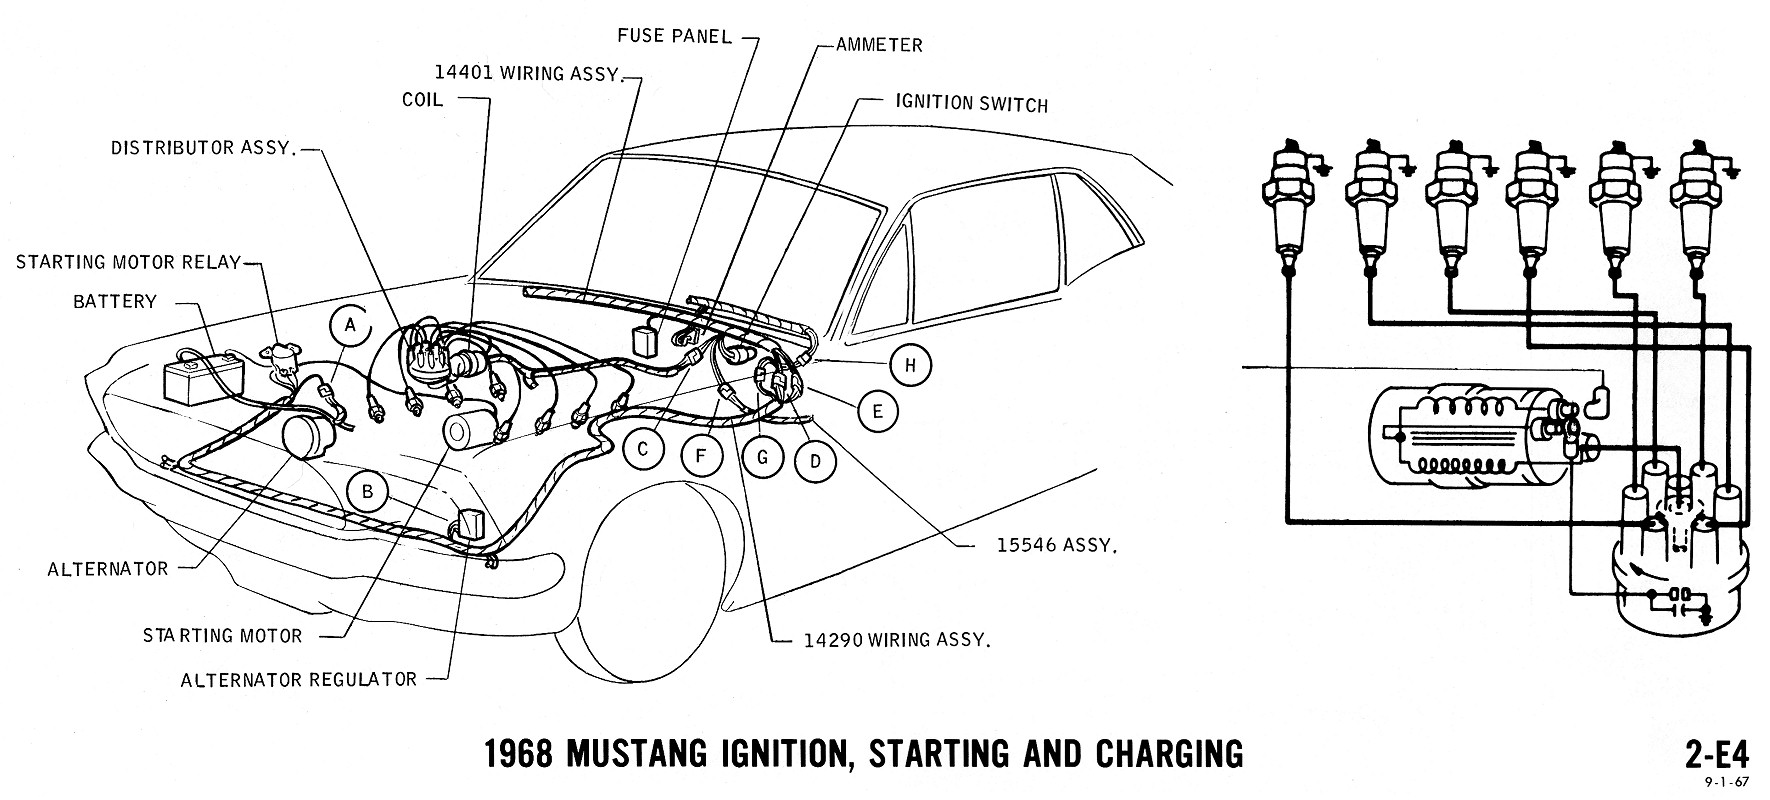 1968 mustang wiring diagram ignition starting charging 2 1968 mustang wiring diagrams and vacuum schematics average joe 1965 ford mustang wiring diagrams at panicattacktreatment.co